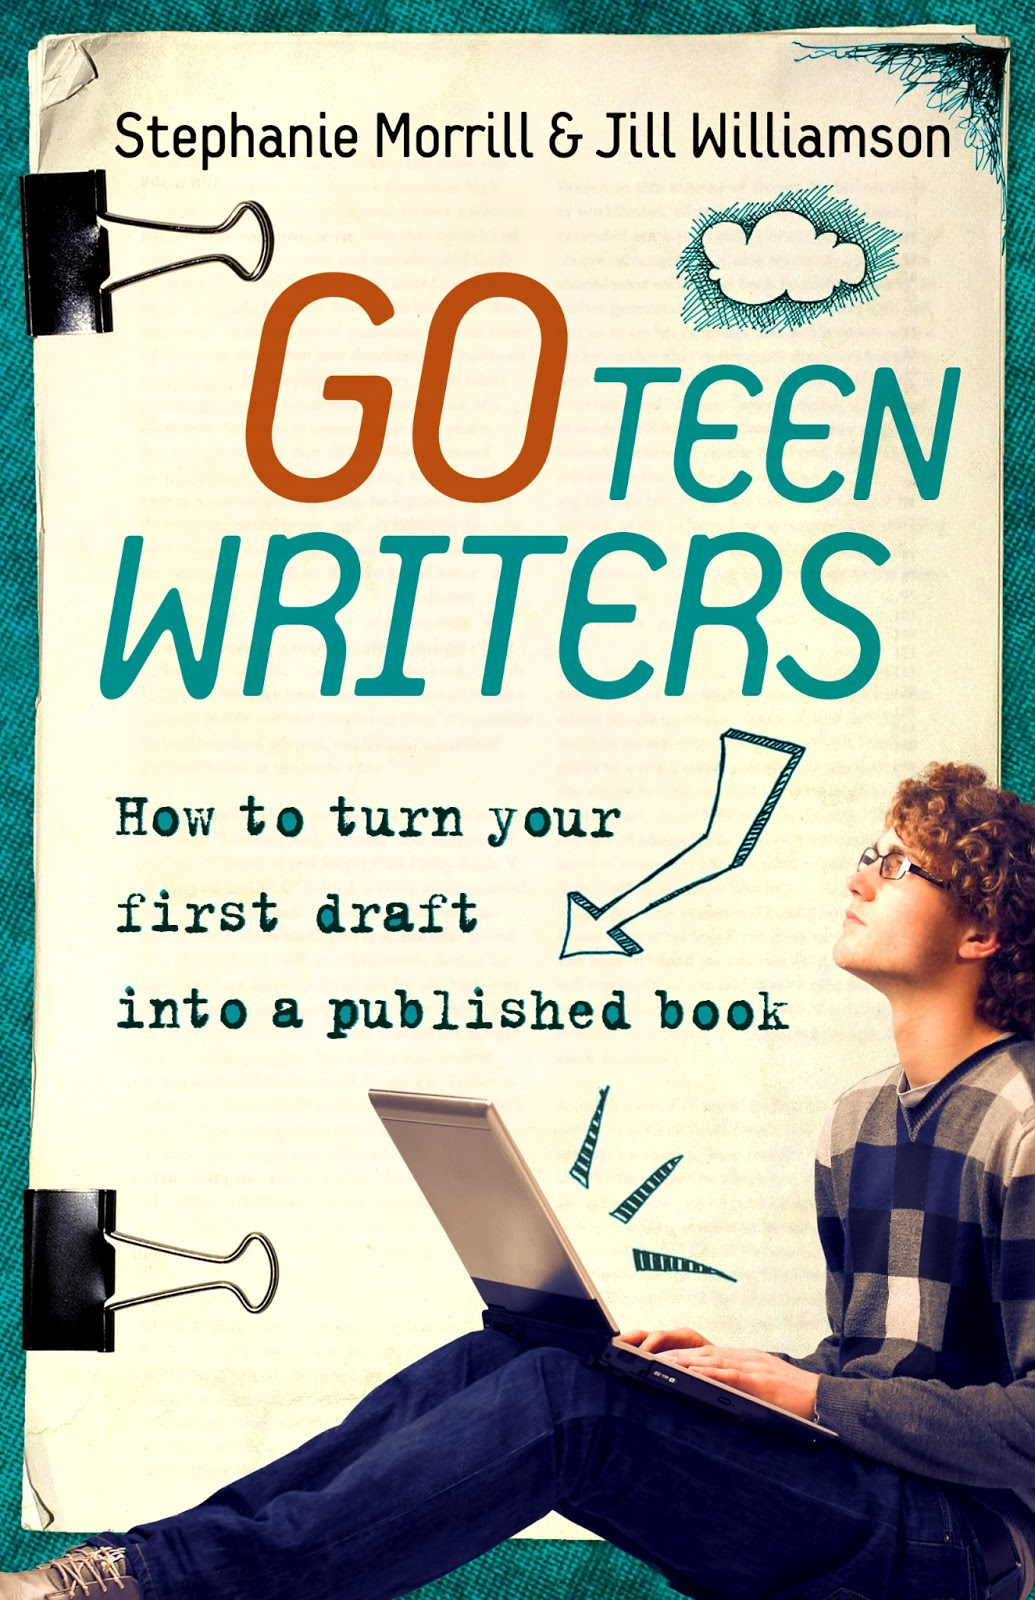 How to go about writing a book